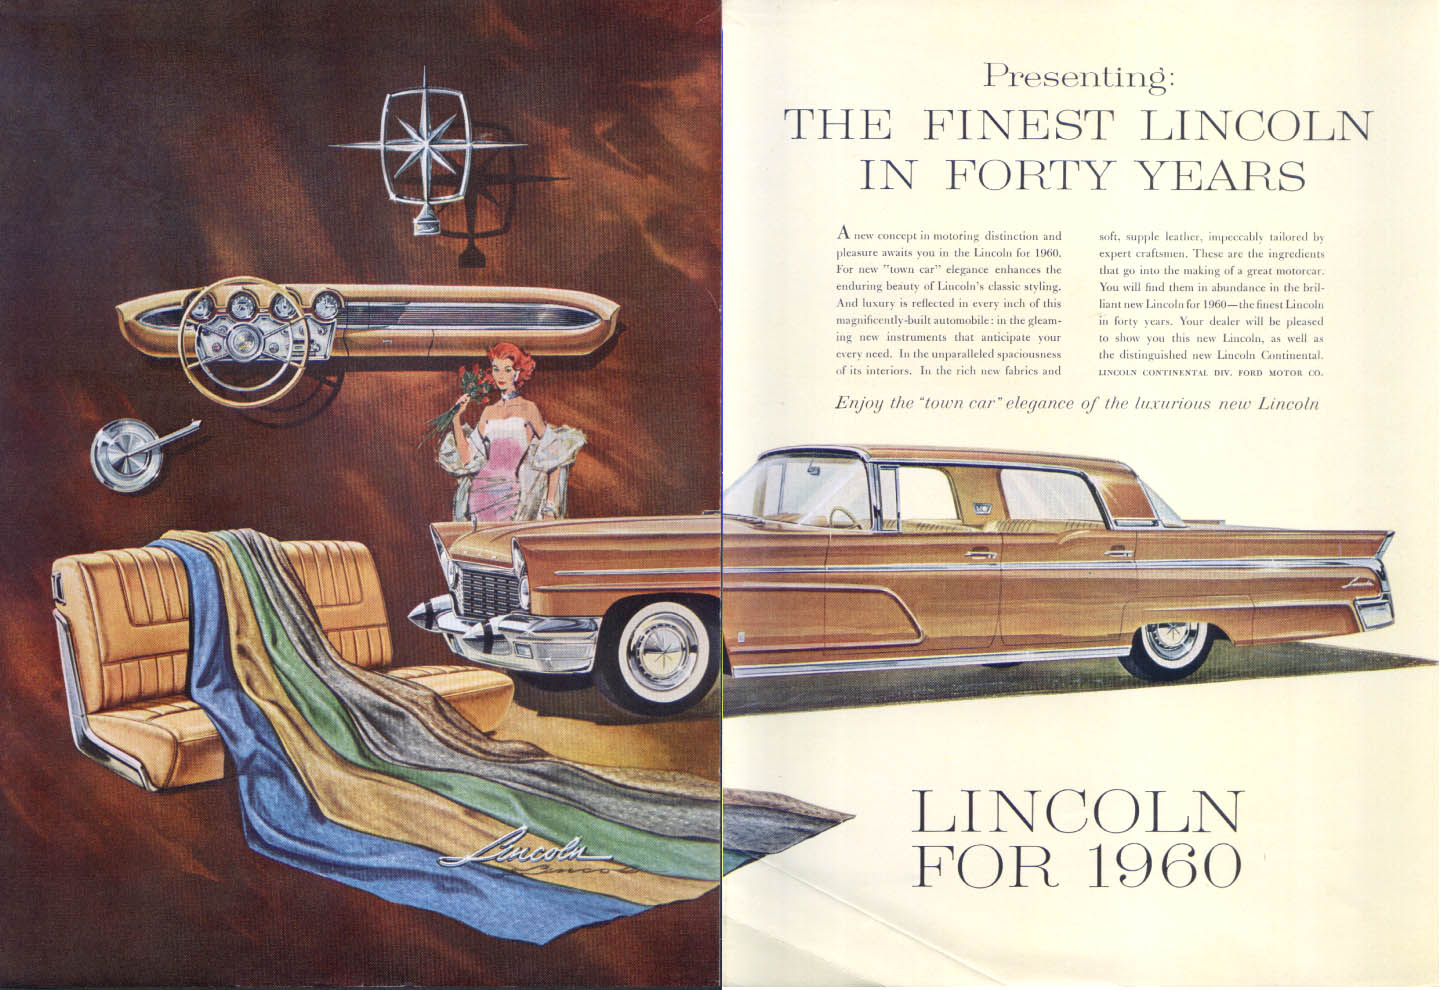 Image for Lincoln Finest in Forty Years ad 1960